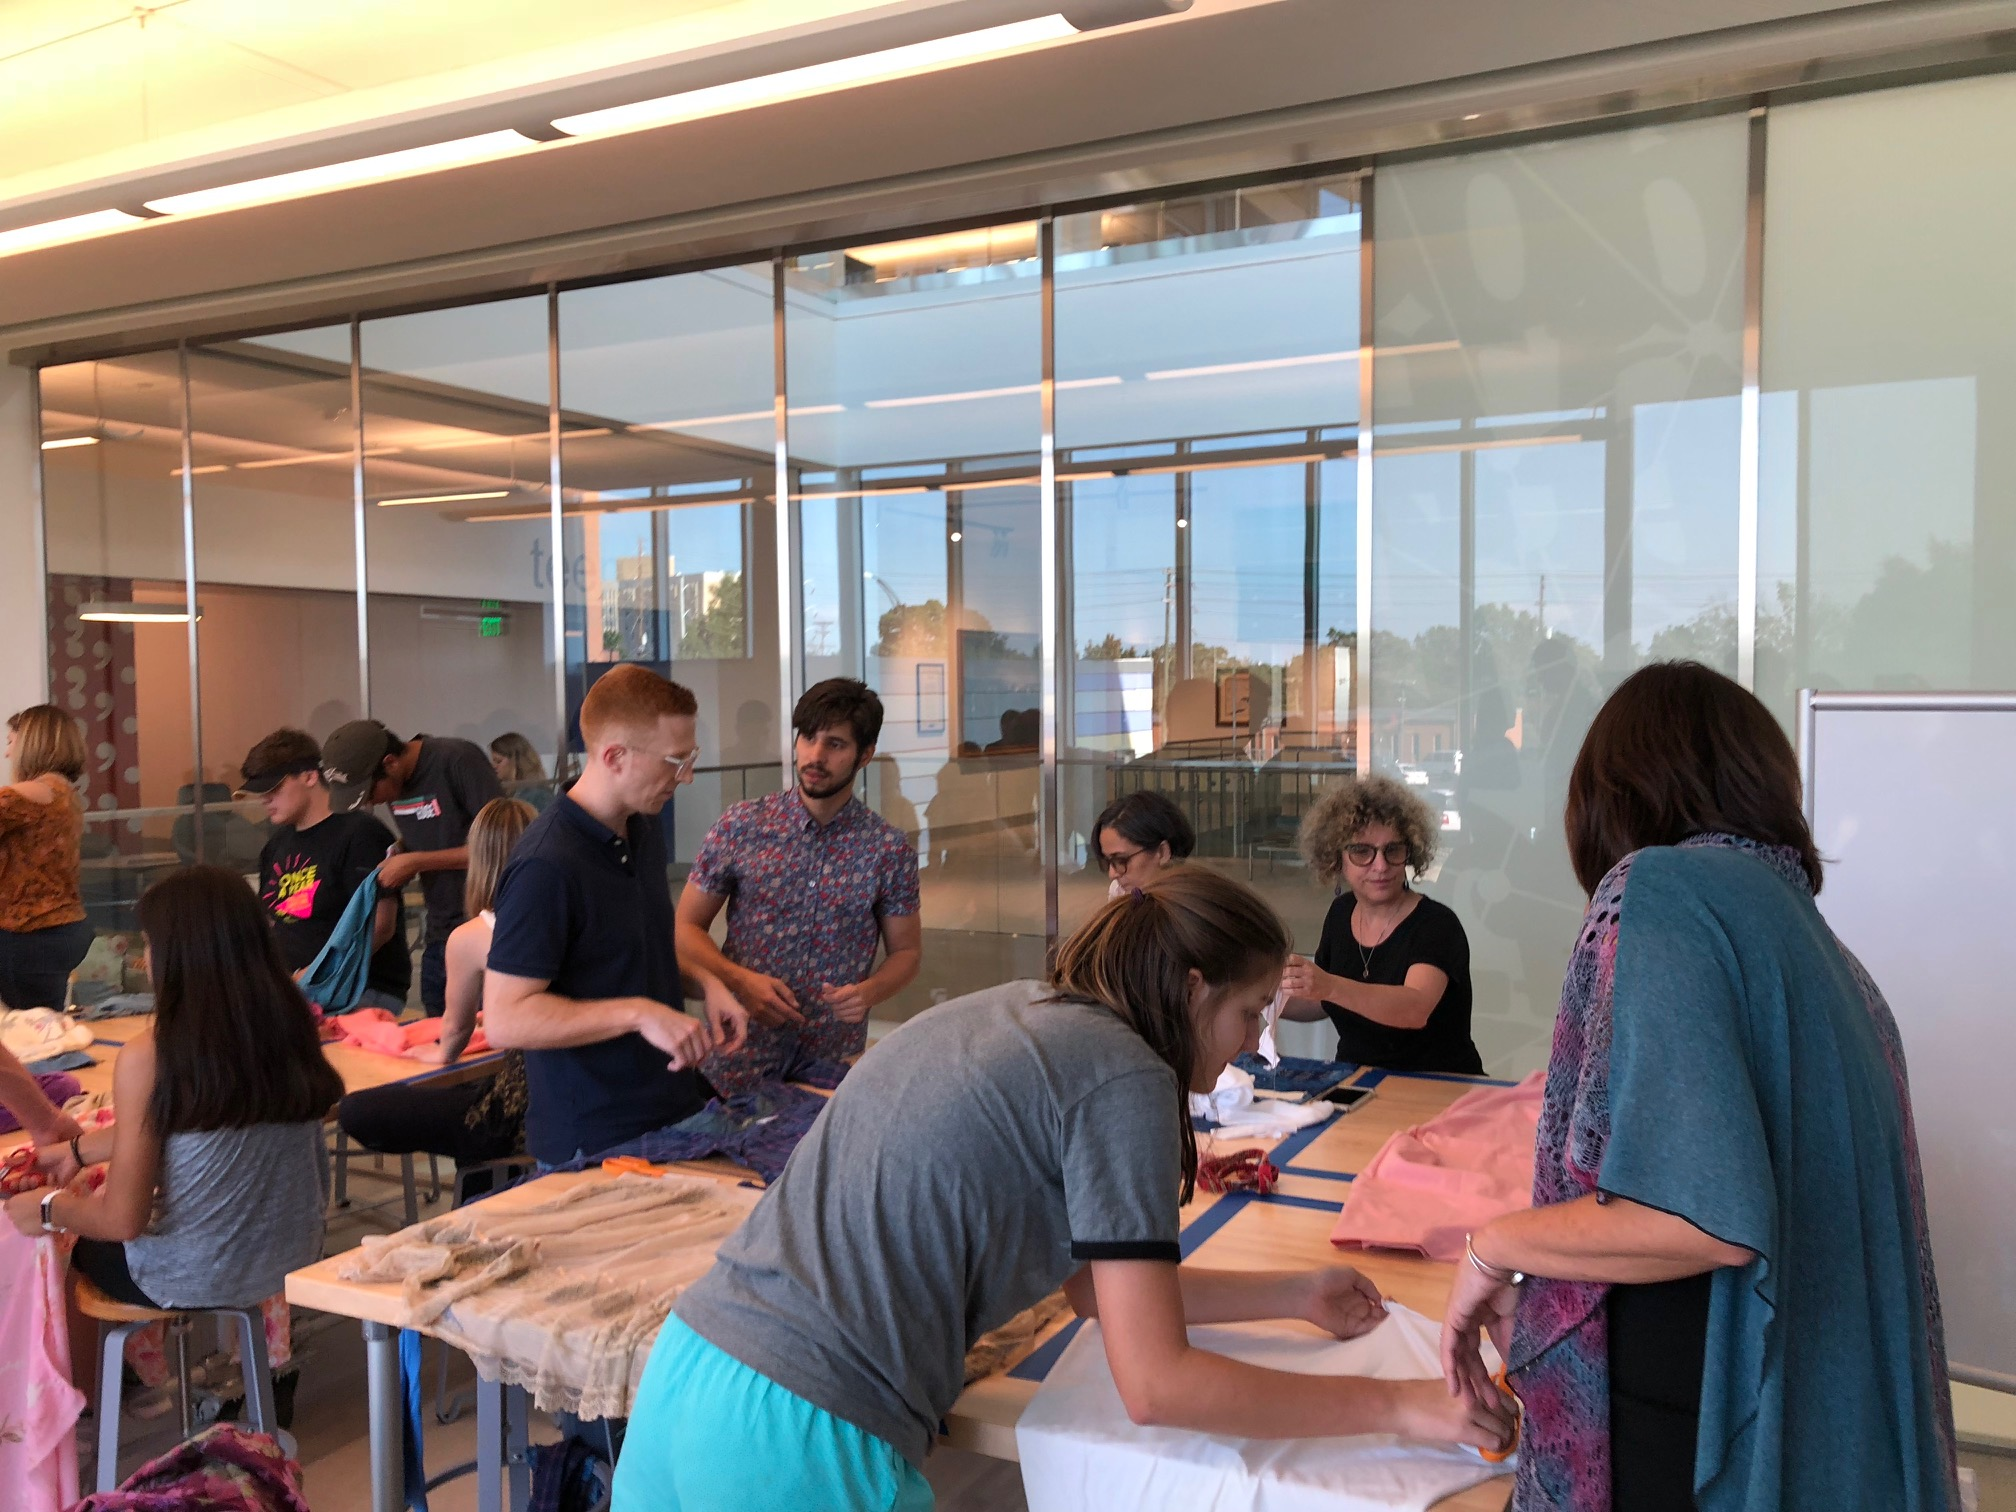 Students, faculty, staff and community sewing pillows